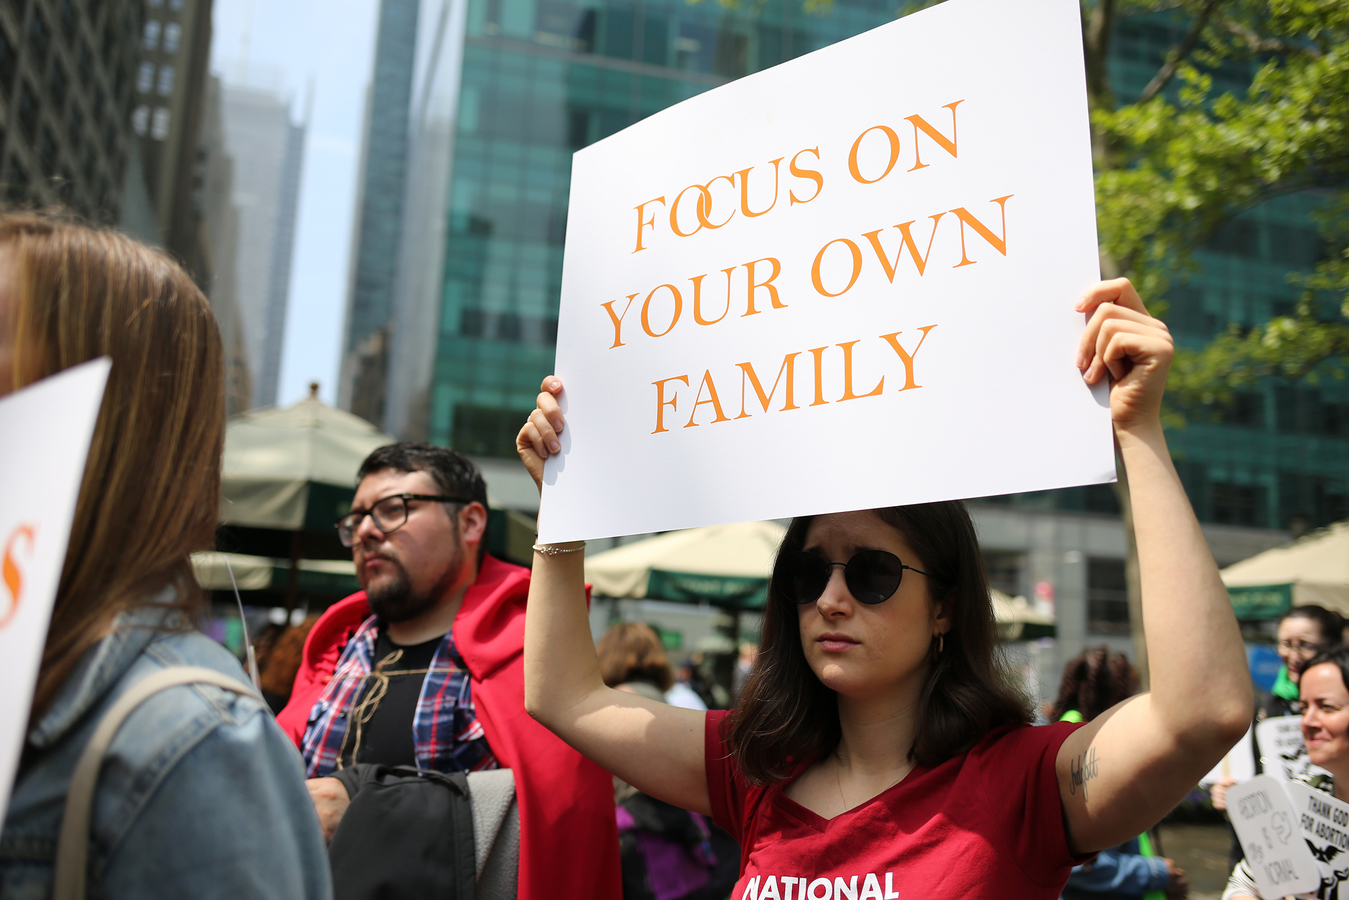 New Yorkers Say HELL NO to Hate Group Focus On The Family 5/4/19